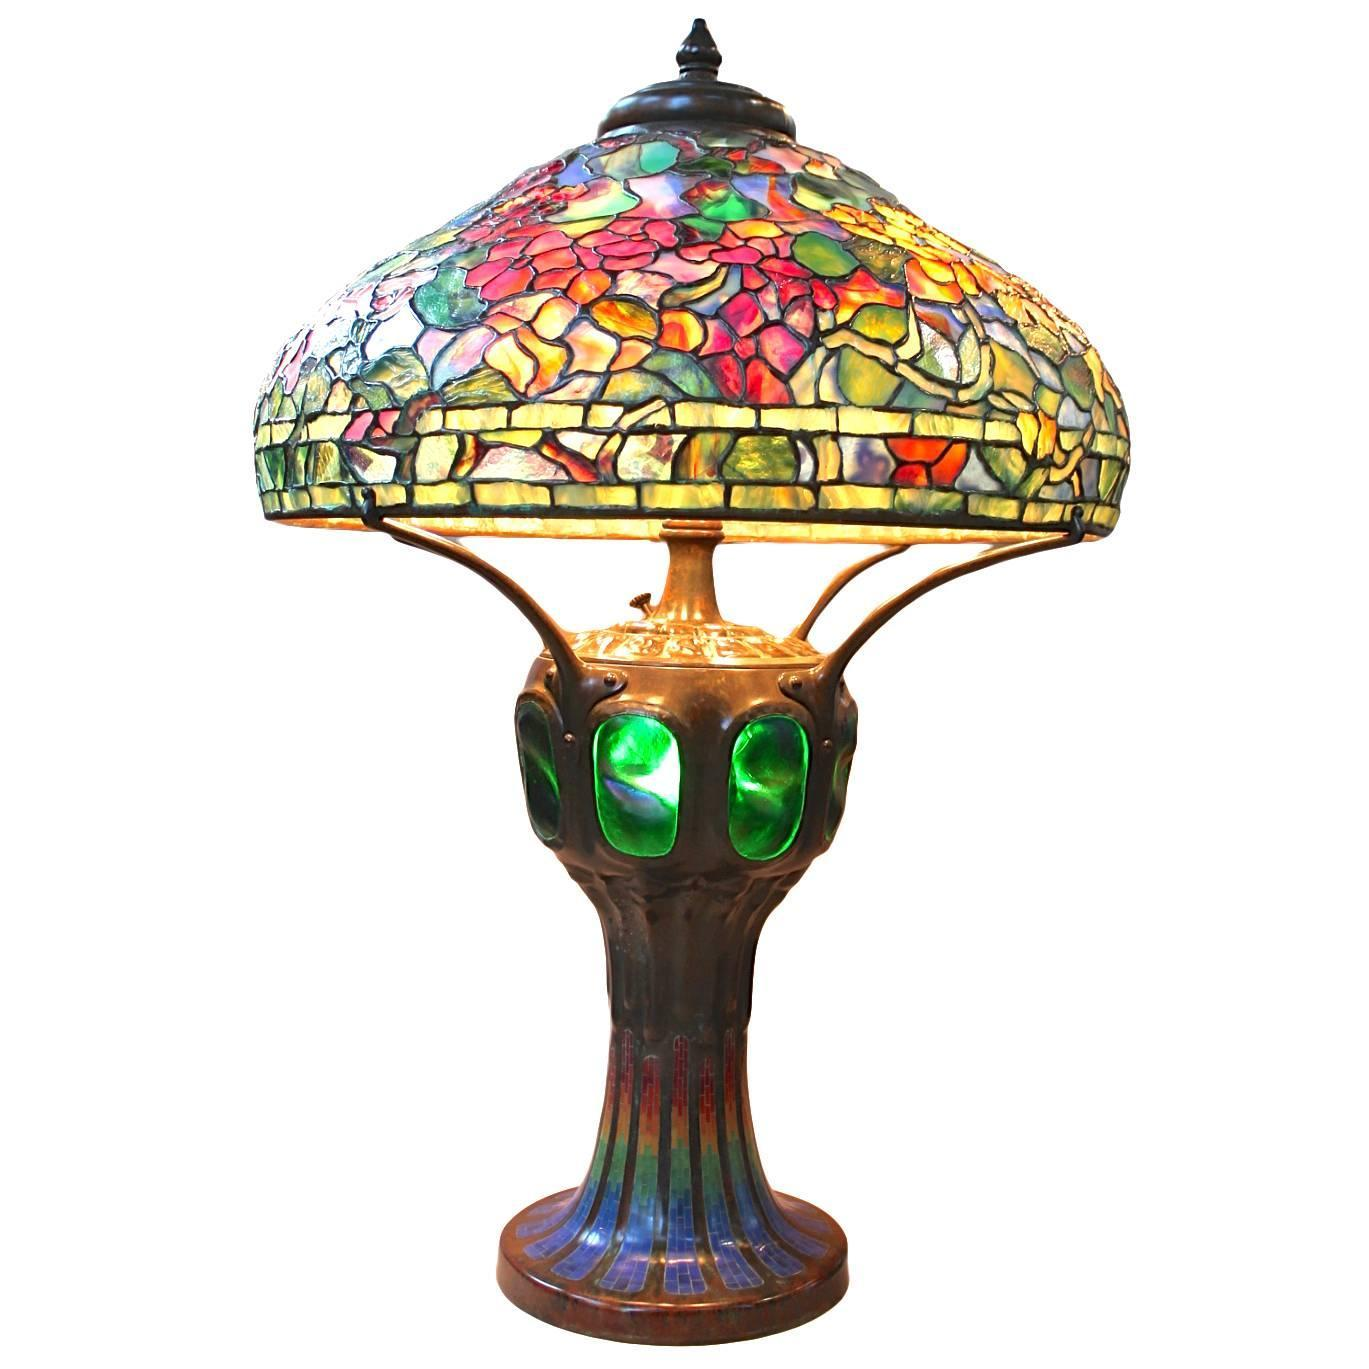 tiffany style leaded glass nasturtium lamp shade by paul crist at. Black Bedroom Furniture Sets. Home Design Ideas